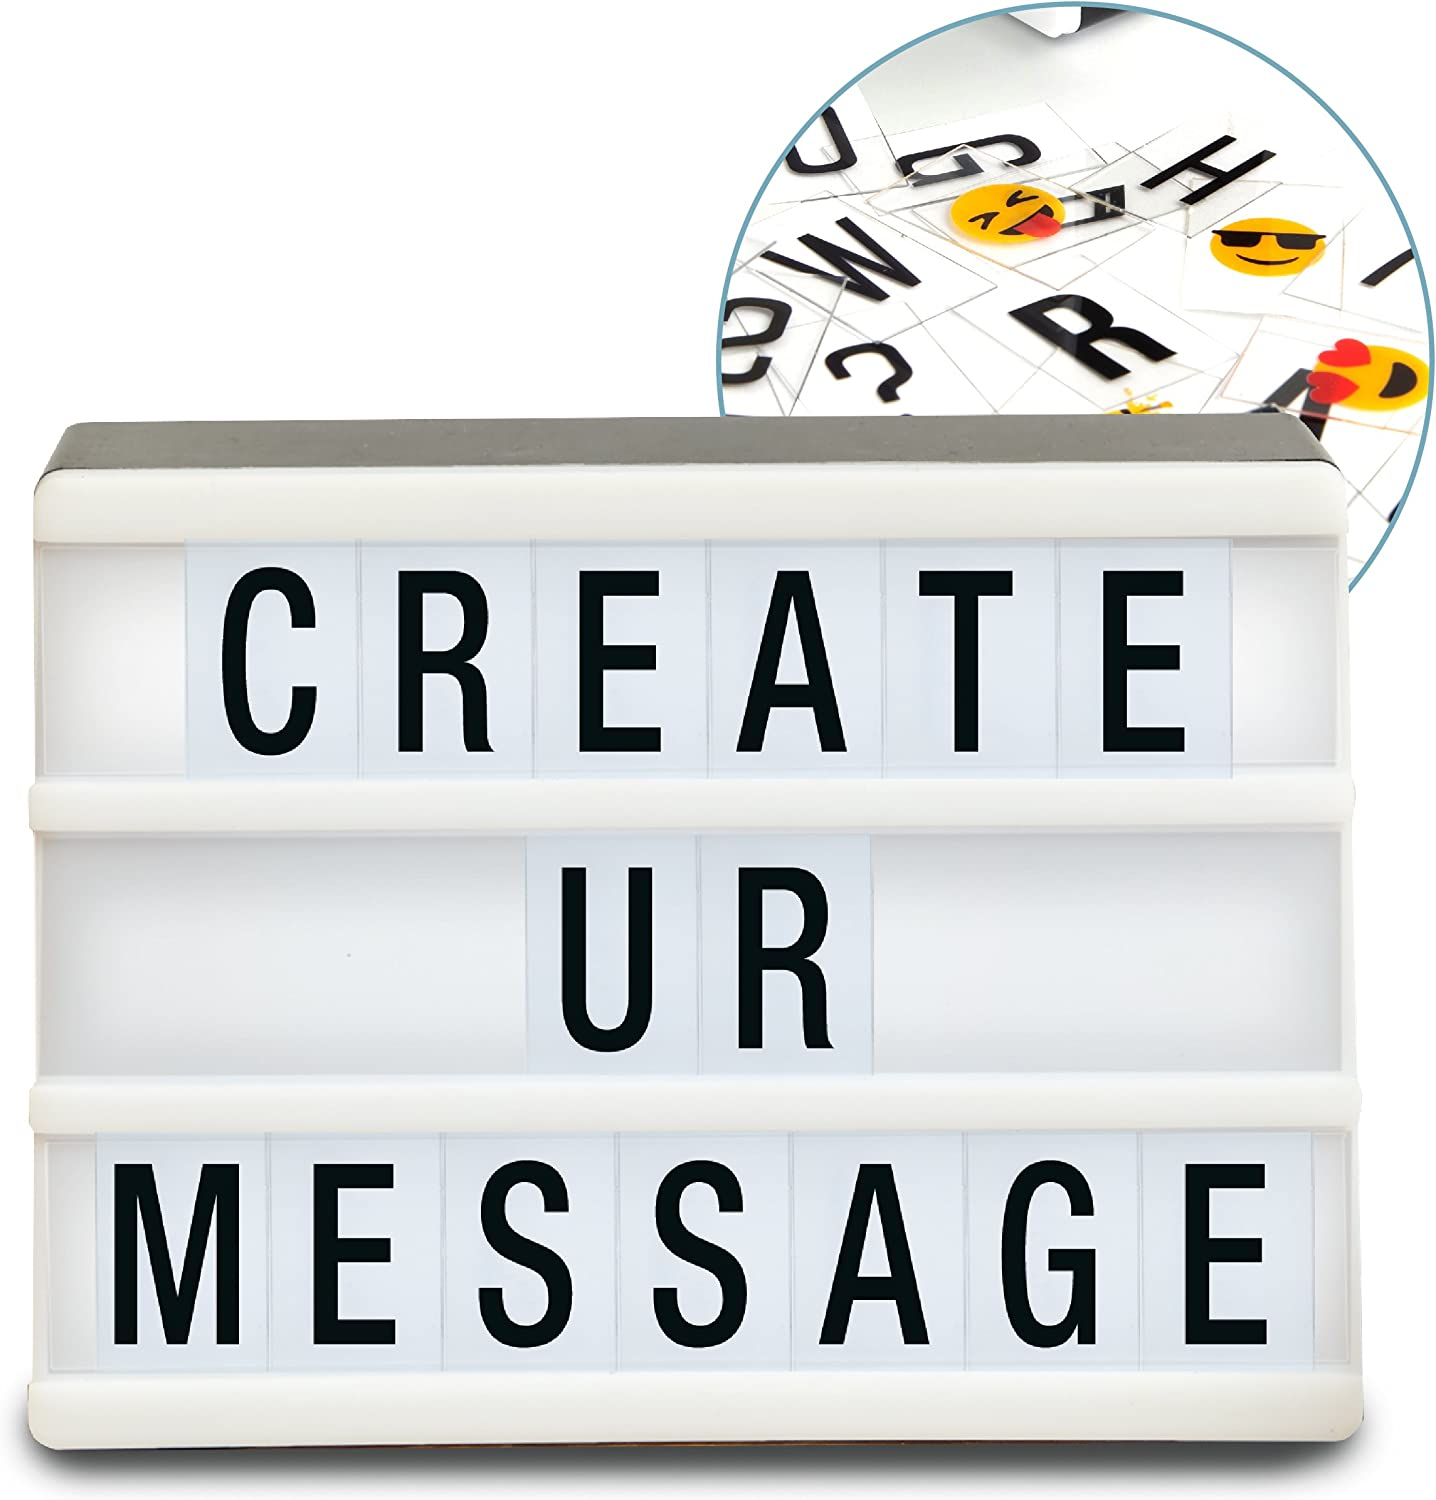 Sharper Image Mini Cinematic Light Up Box LED Message Letter Board Sign with 90 Letters and Emoji, Movie Marquee Lightbox, Aesthetic Bedroom & Room Decor, Theater Cinema Letterbox Lights Display